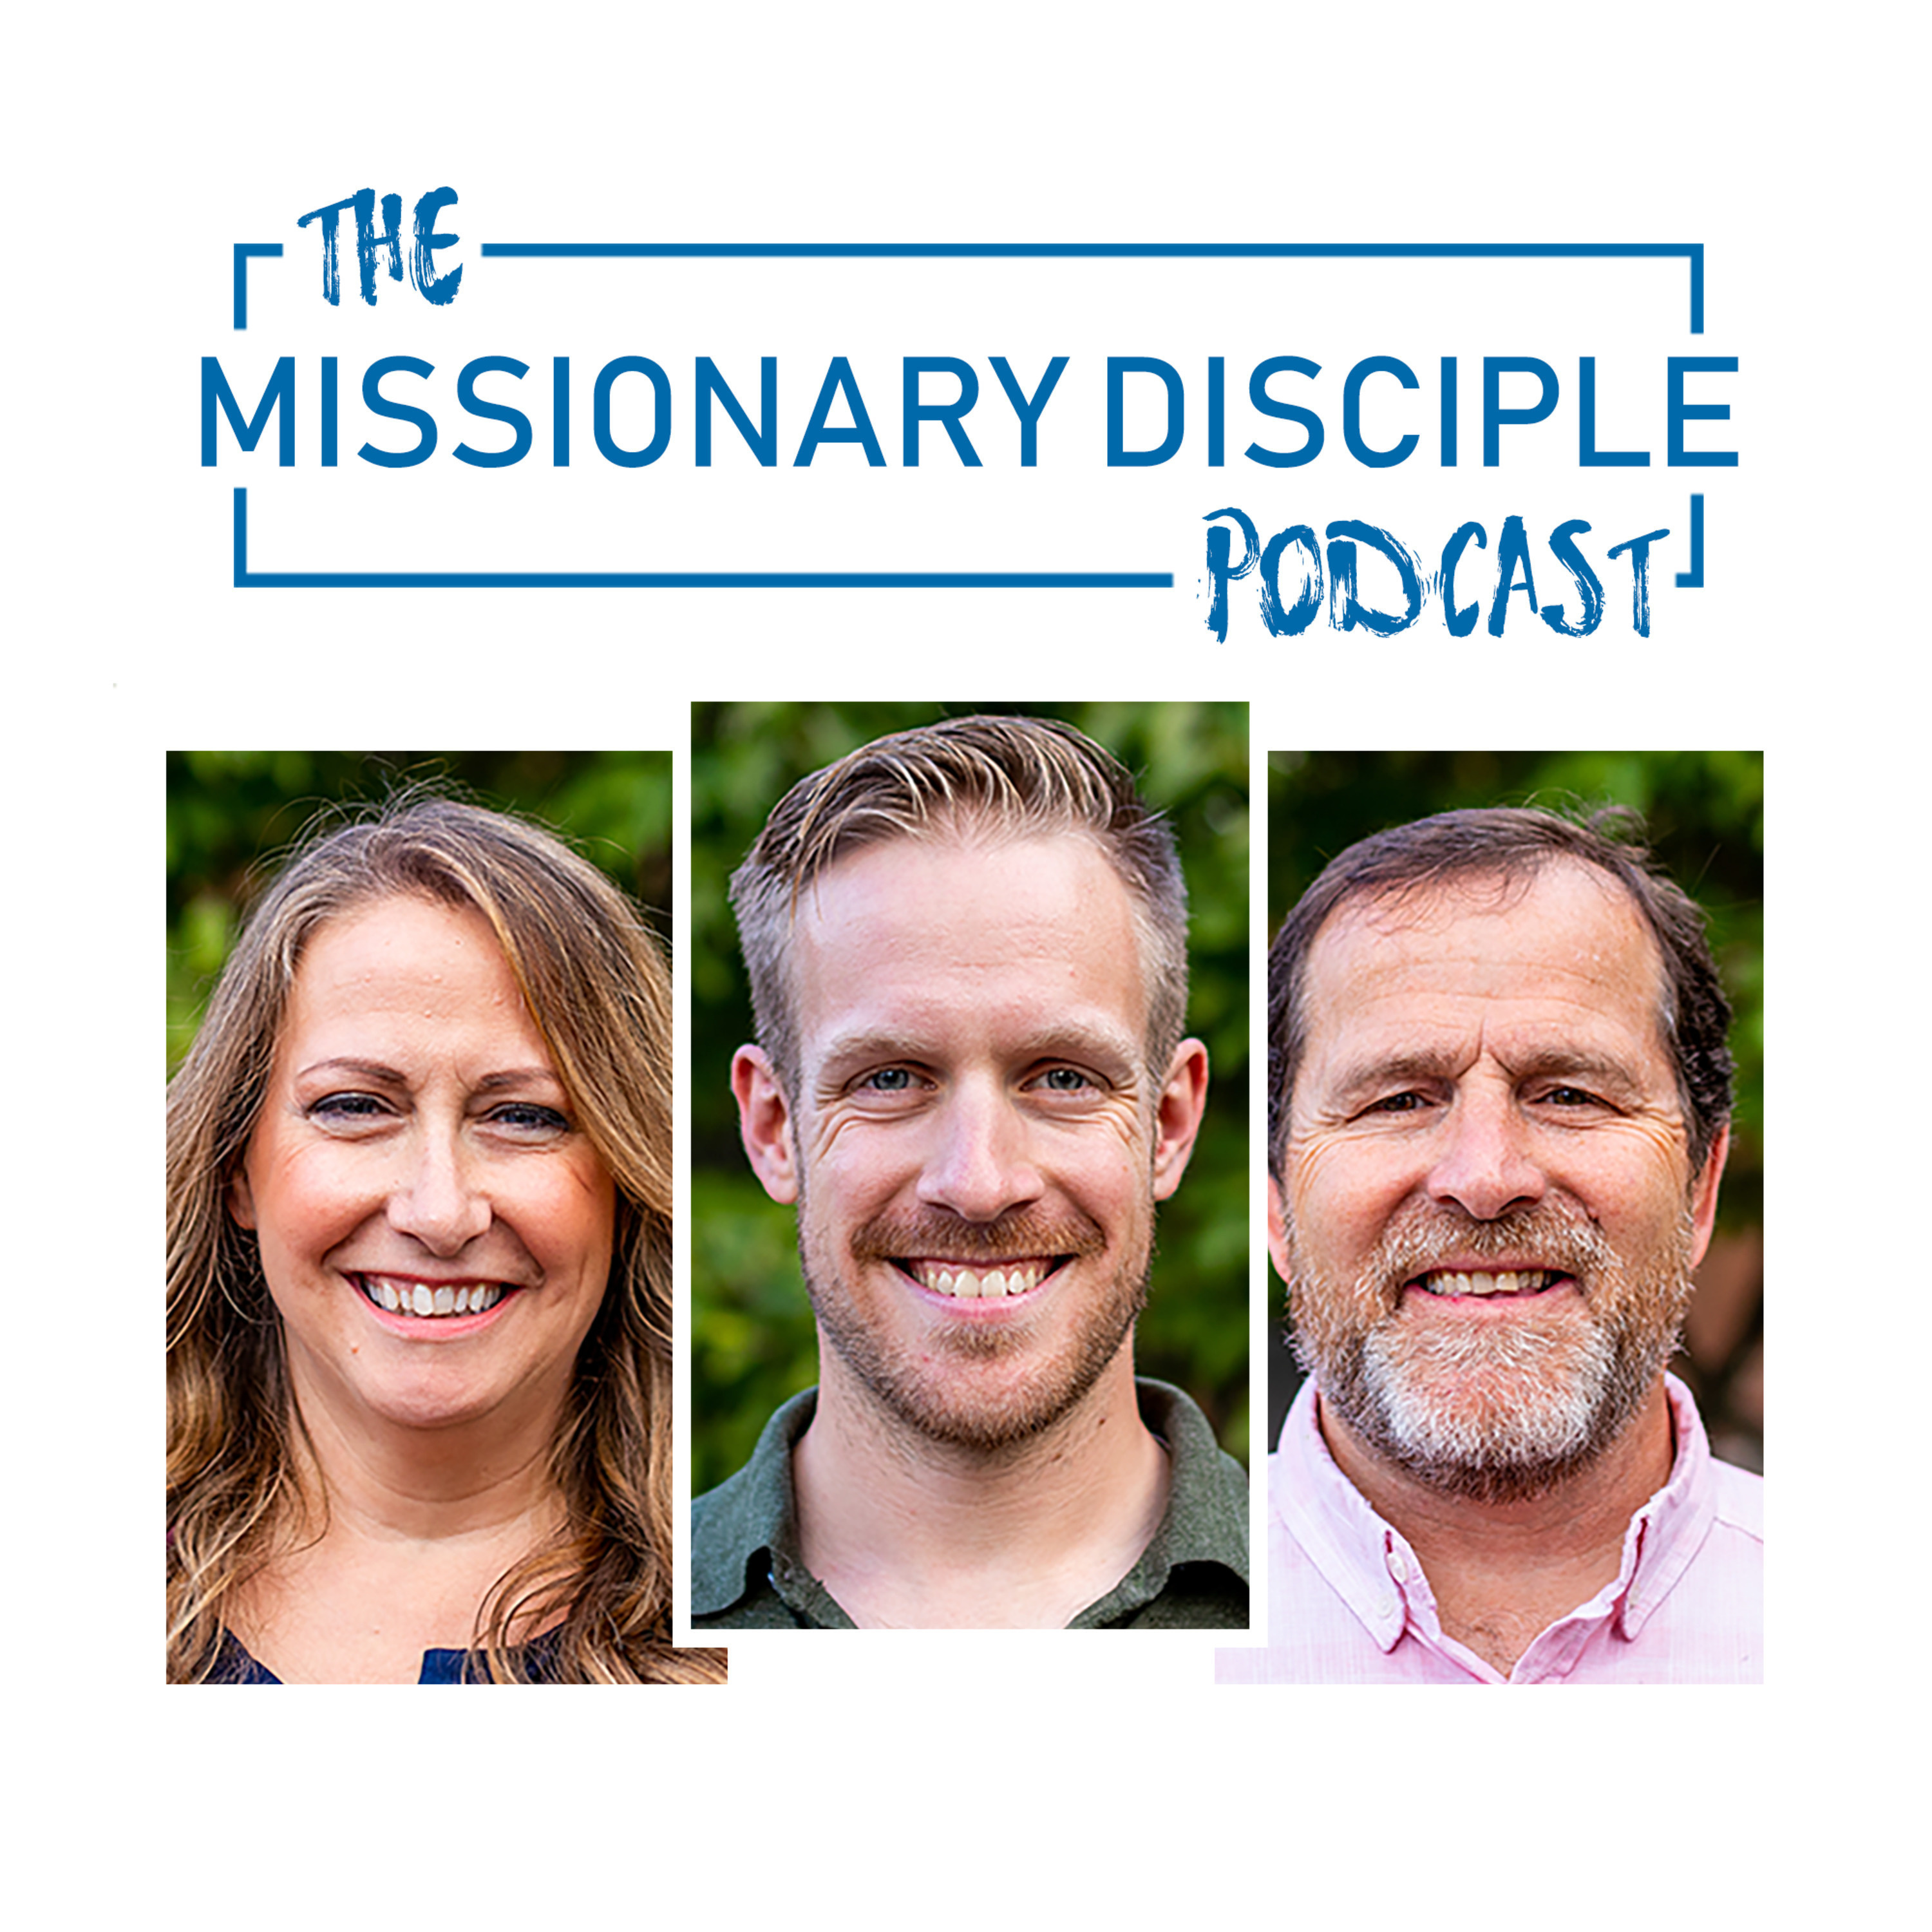 The Missionary Disciple Podcast | Listen via Stitcher for